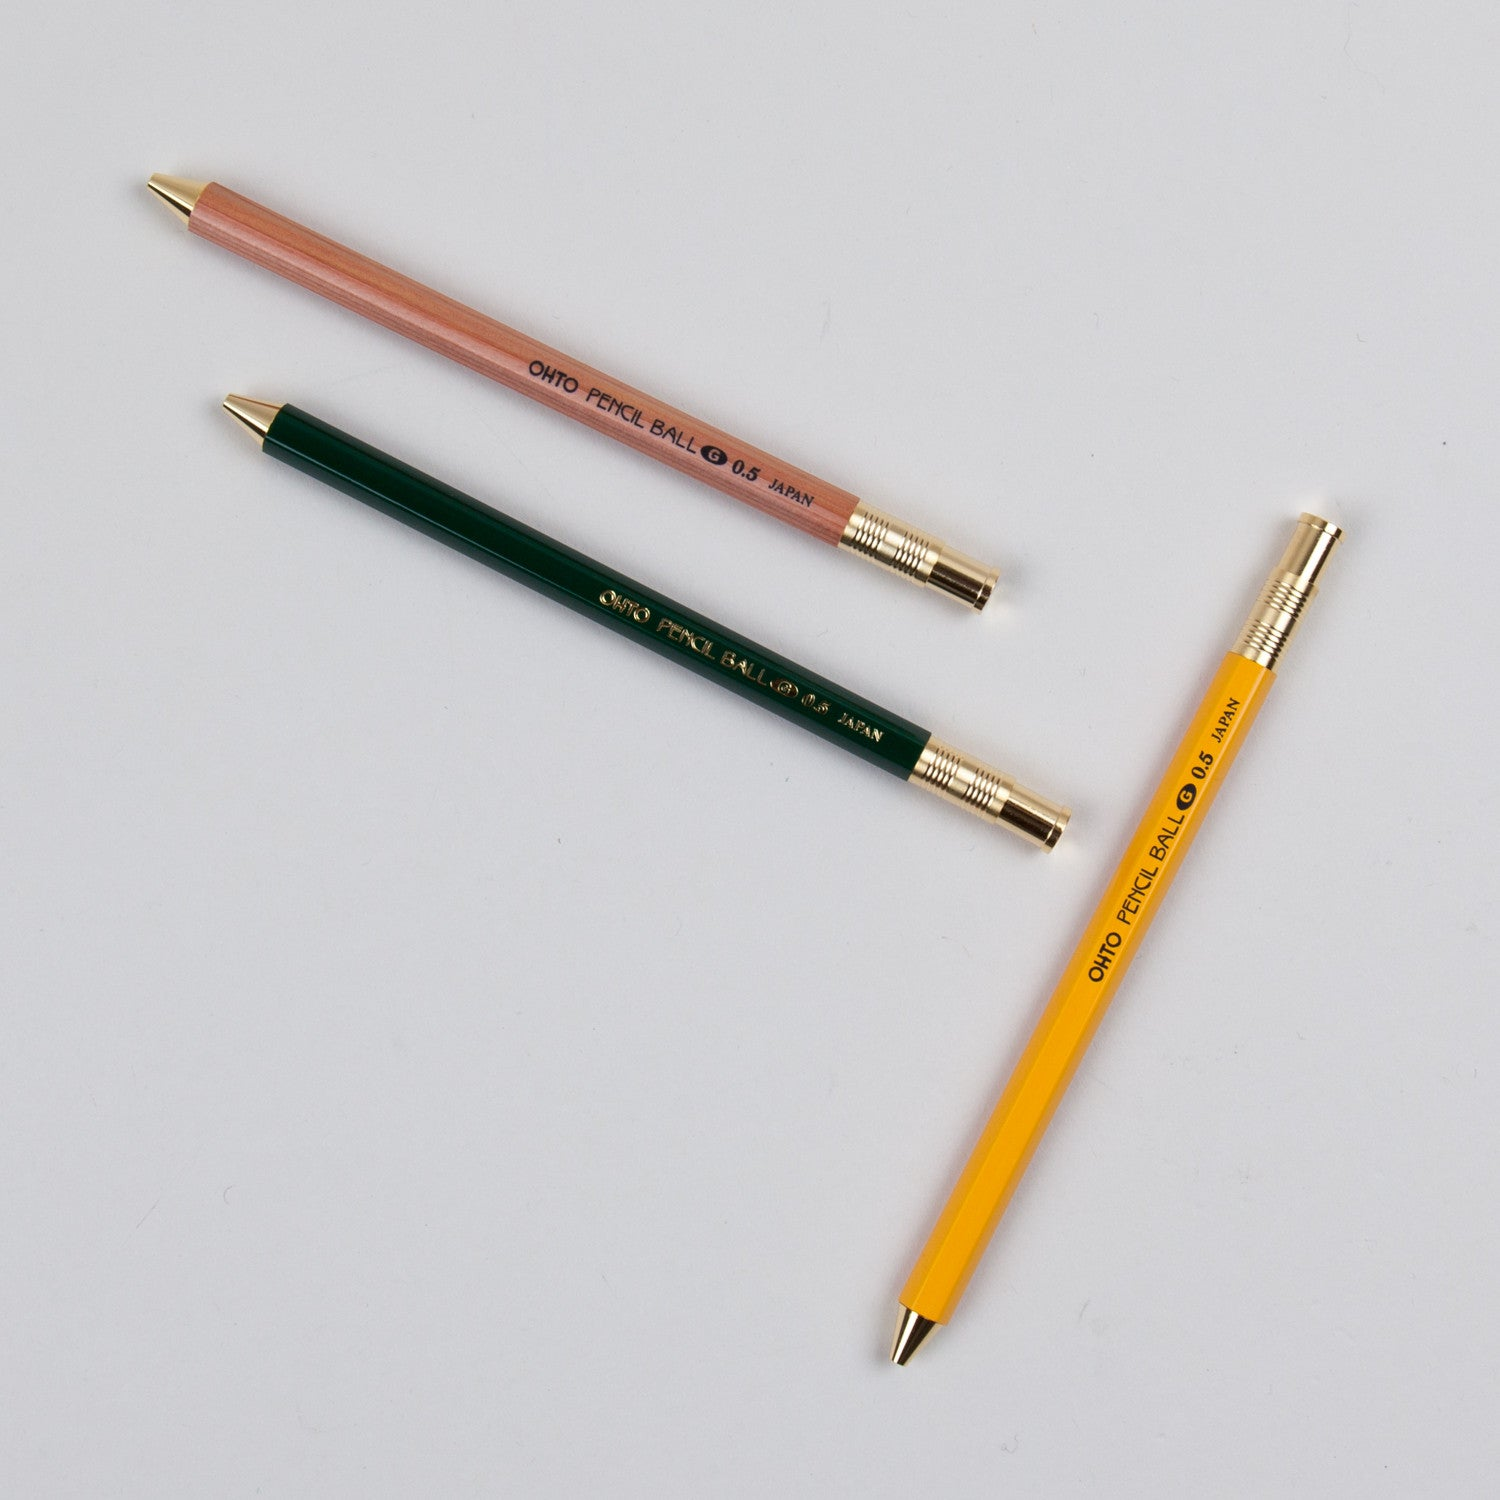 Ohto Pen - Pencil Ball G 0.5 Green